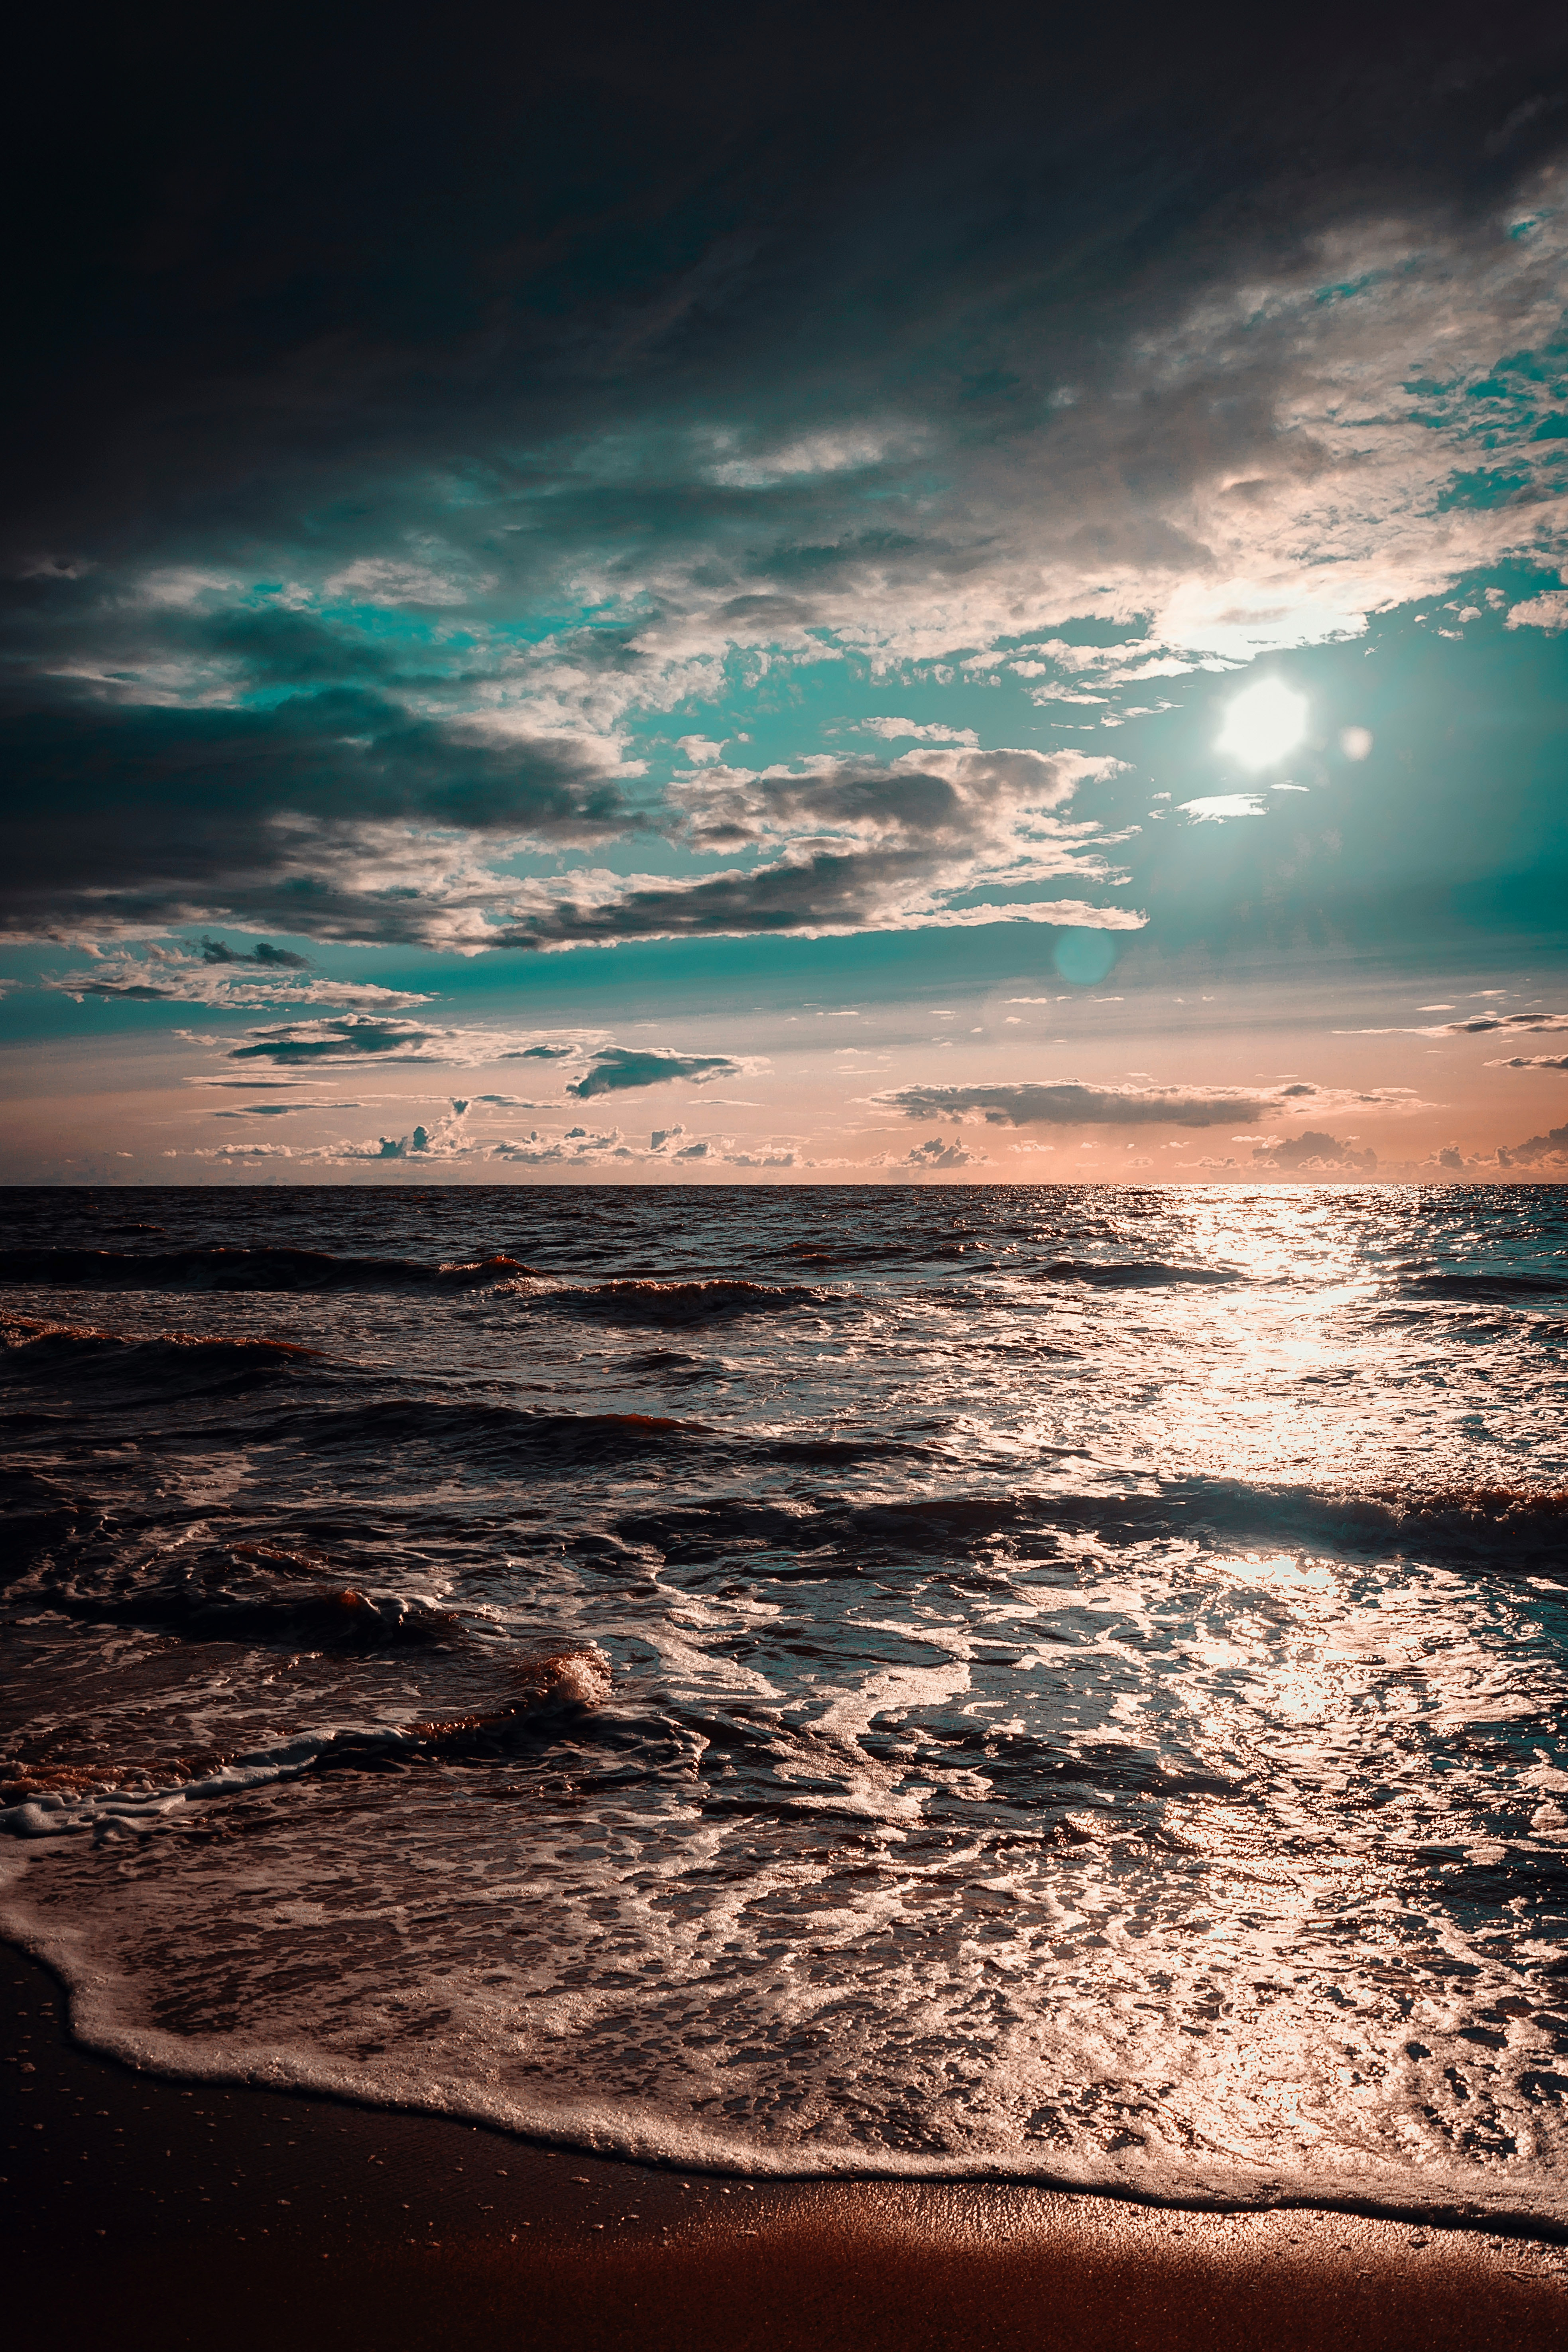 57695 download wallpaper Nature, Sea, Ocean, Surf, Sunset, Clouds screensavers and pictures for free